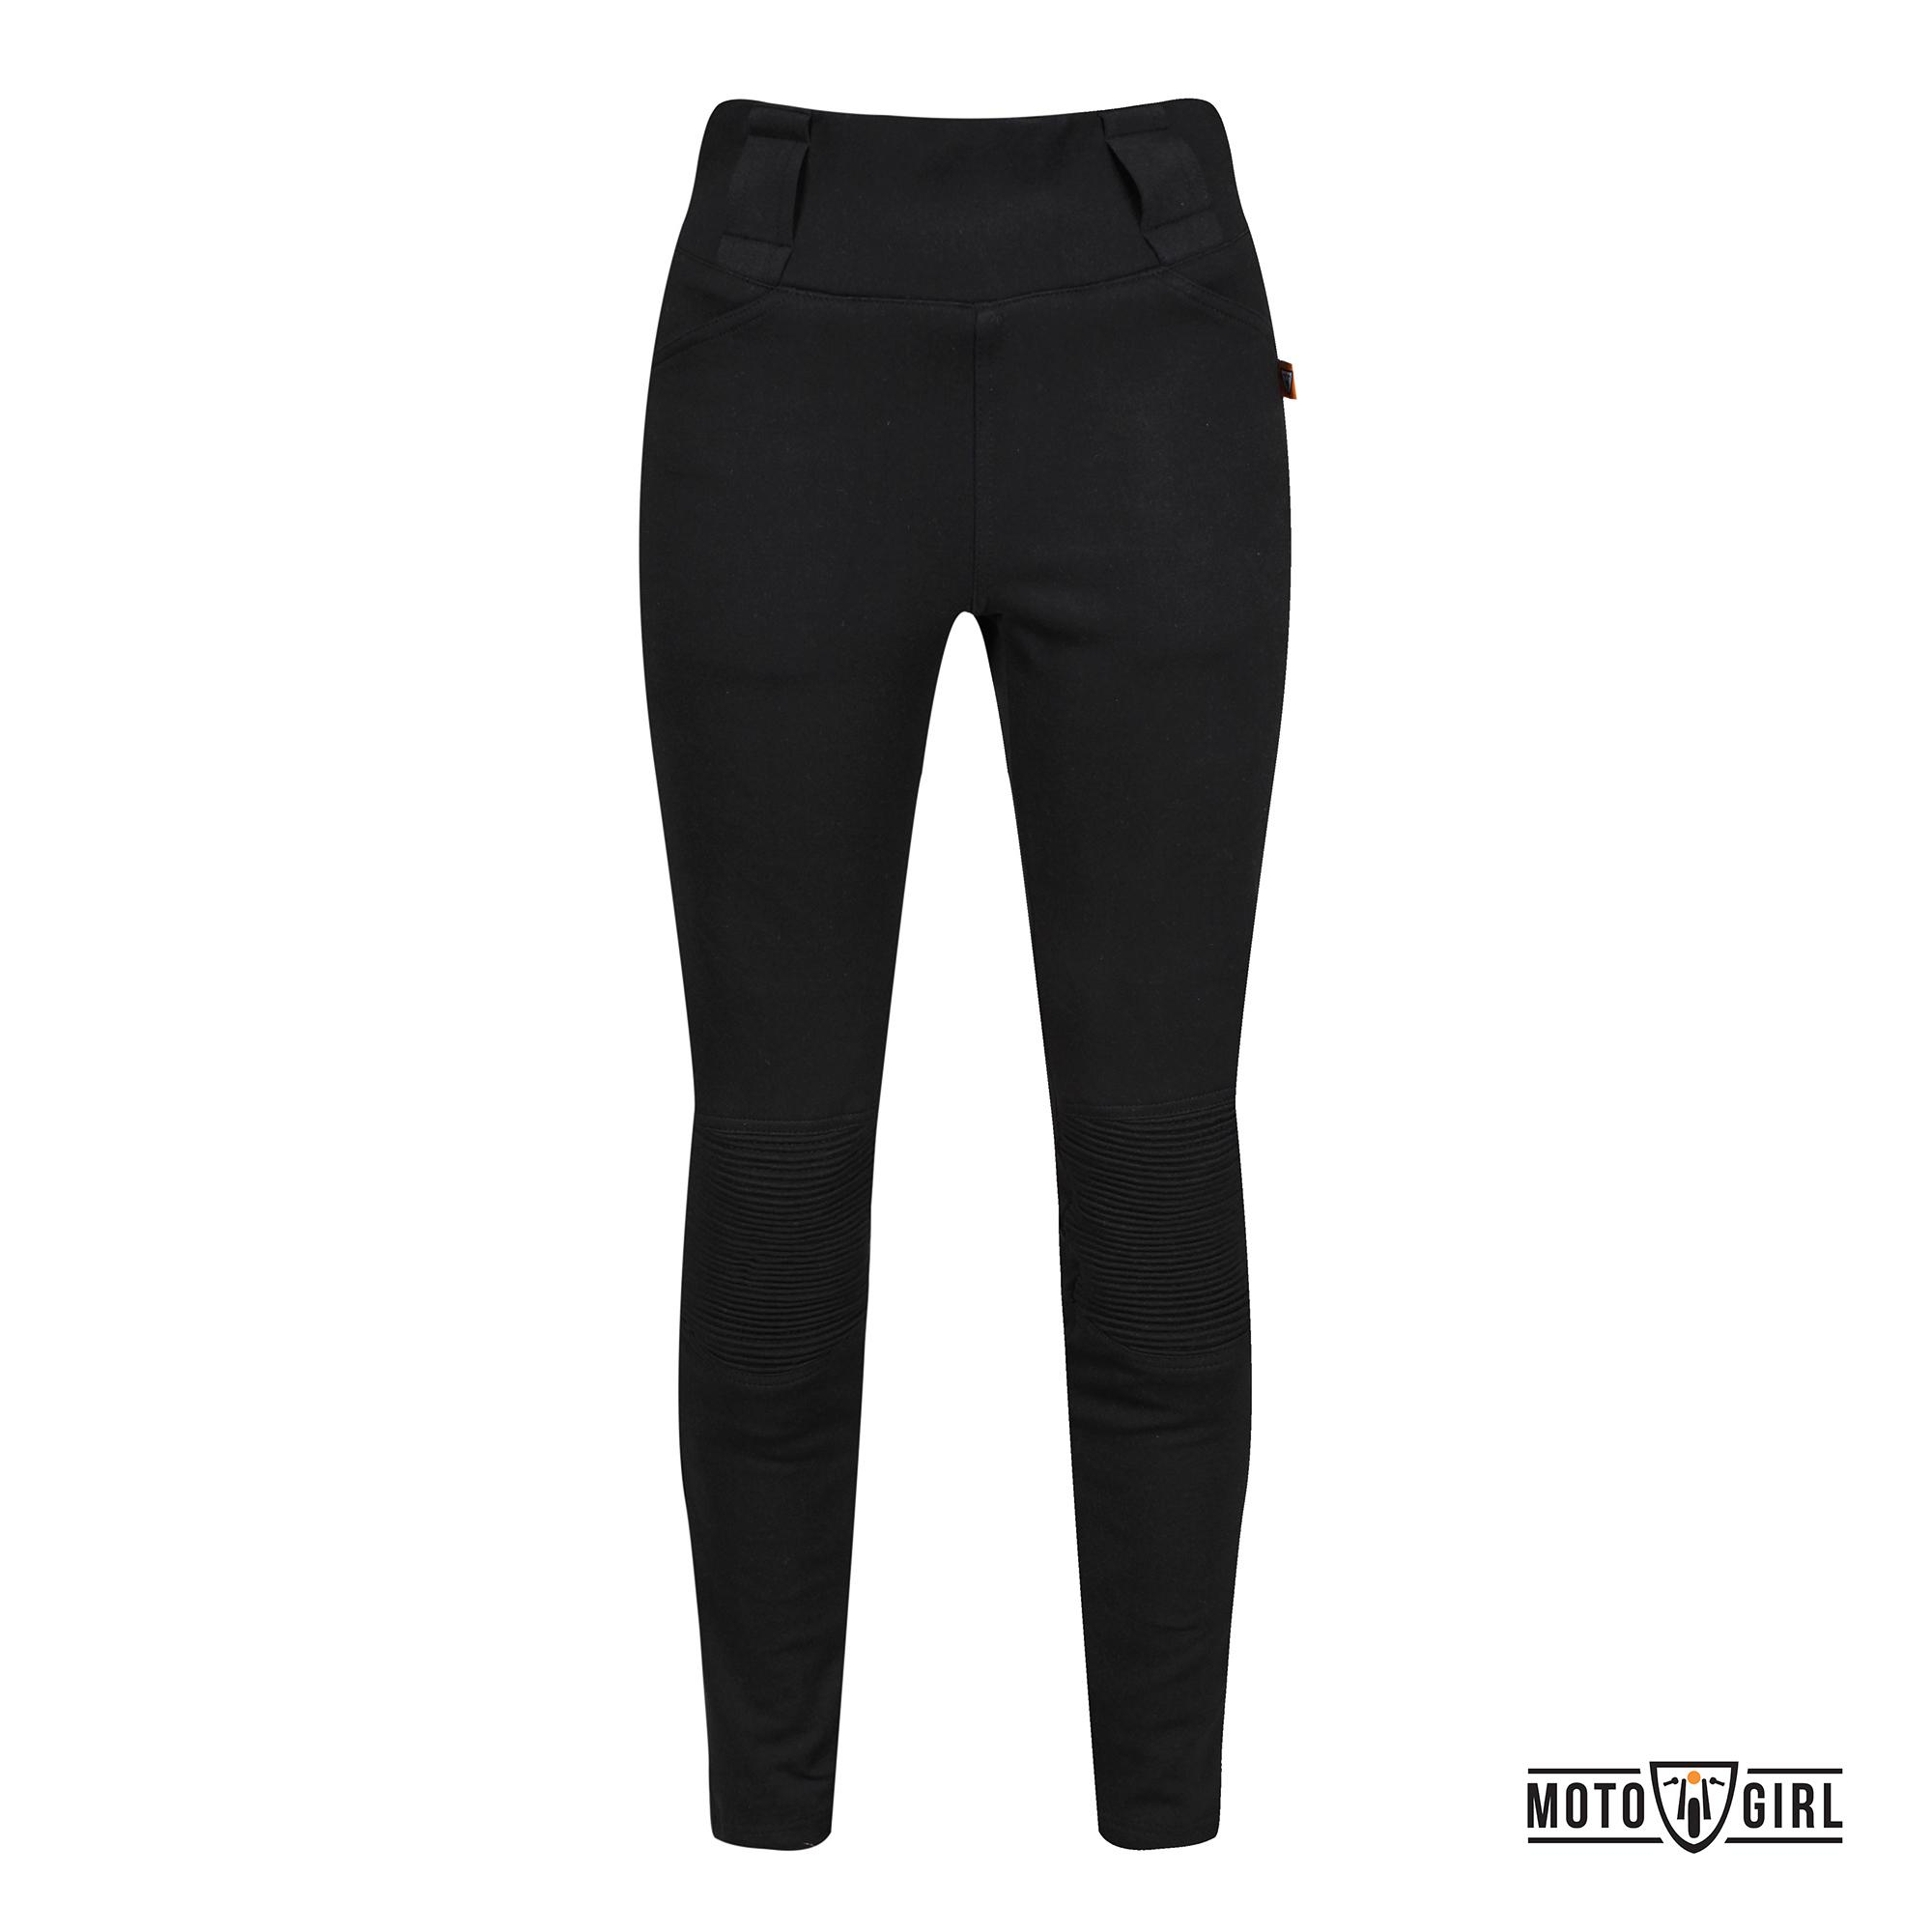 Pantaloni Motogirl - Ribbed Leggings Nero